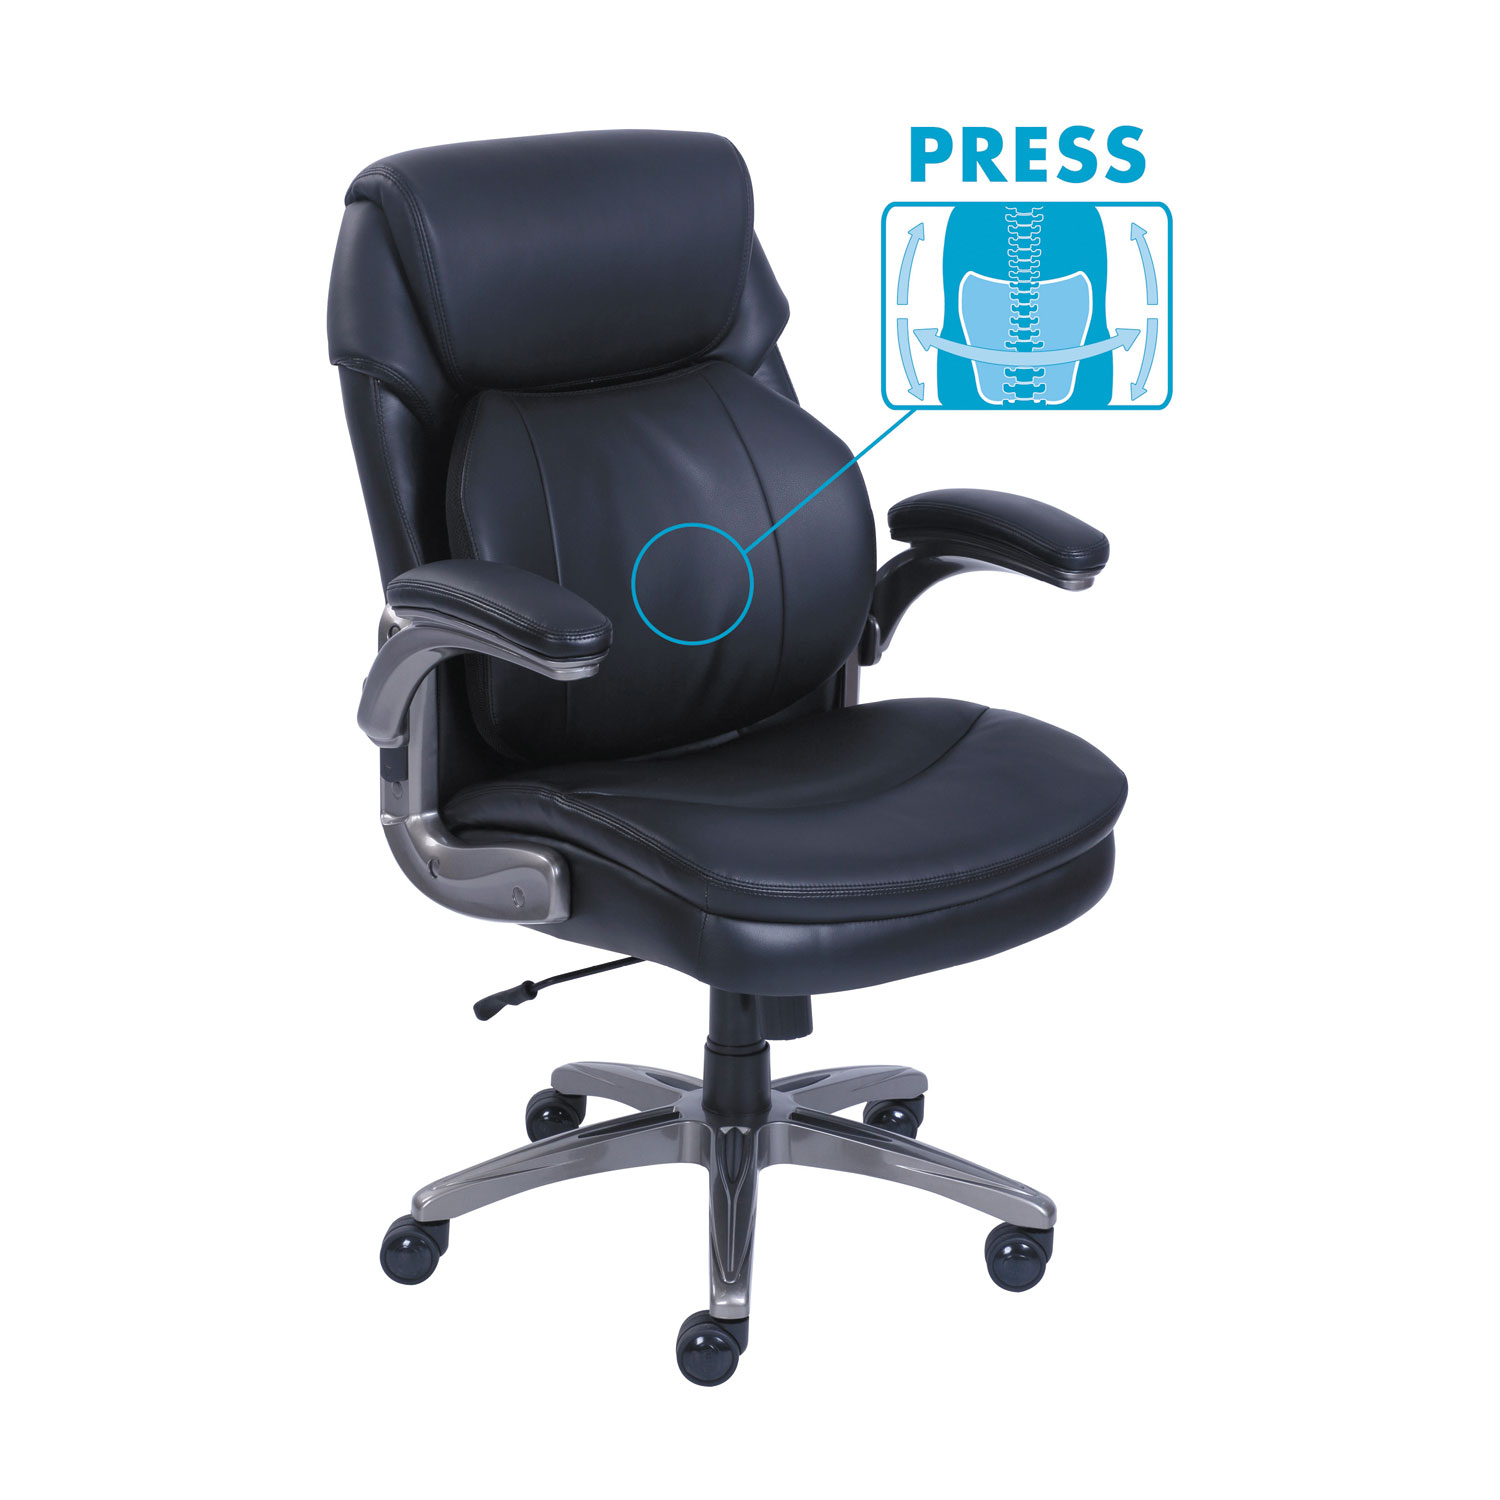 Cosset Mid Back Executive Chair Black Srj48966 Thumbnail 1 2 3